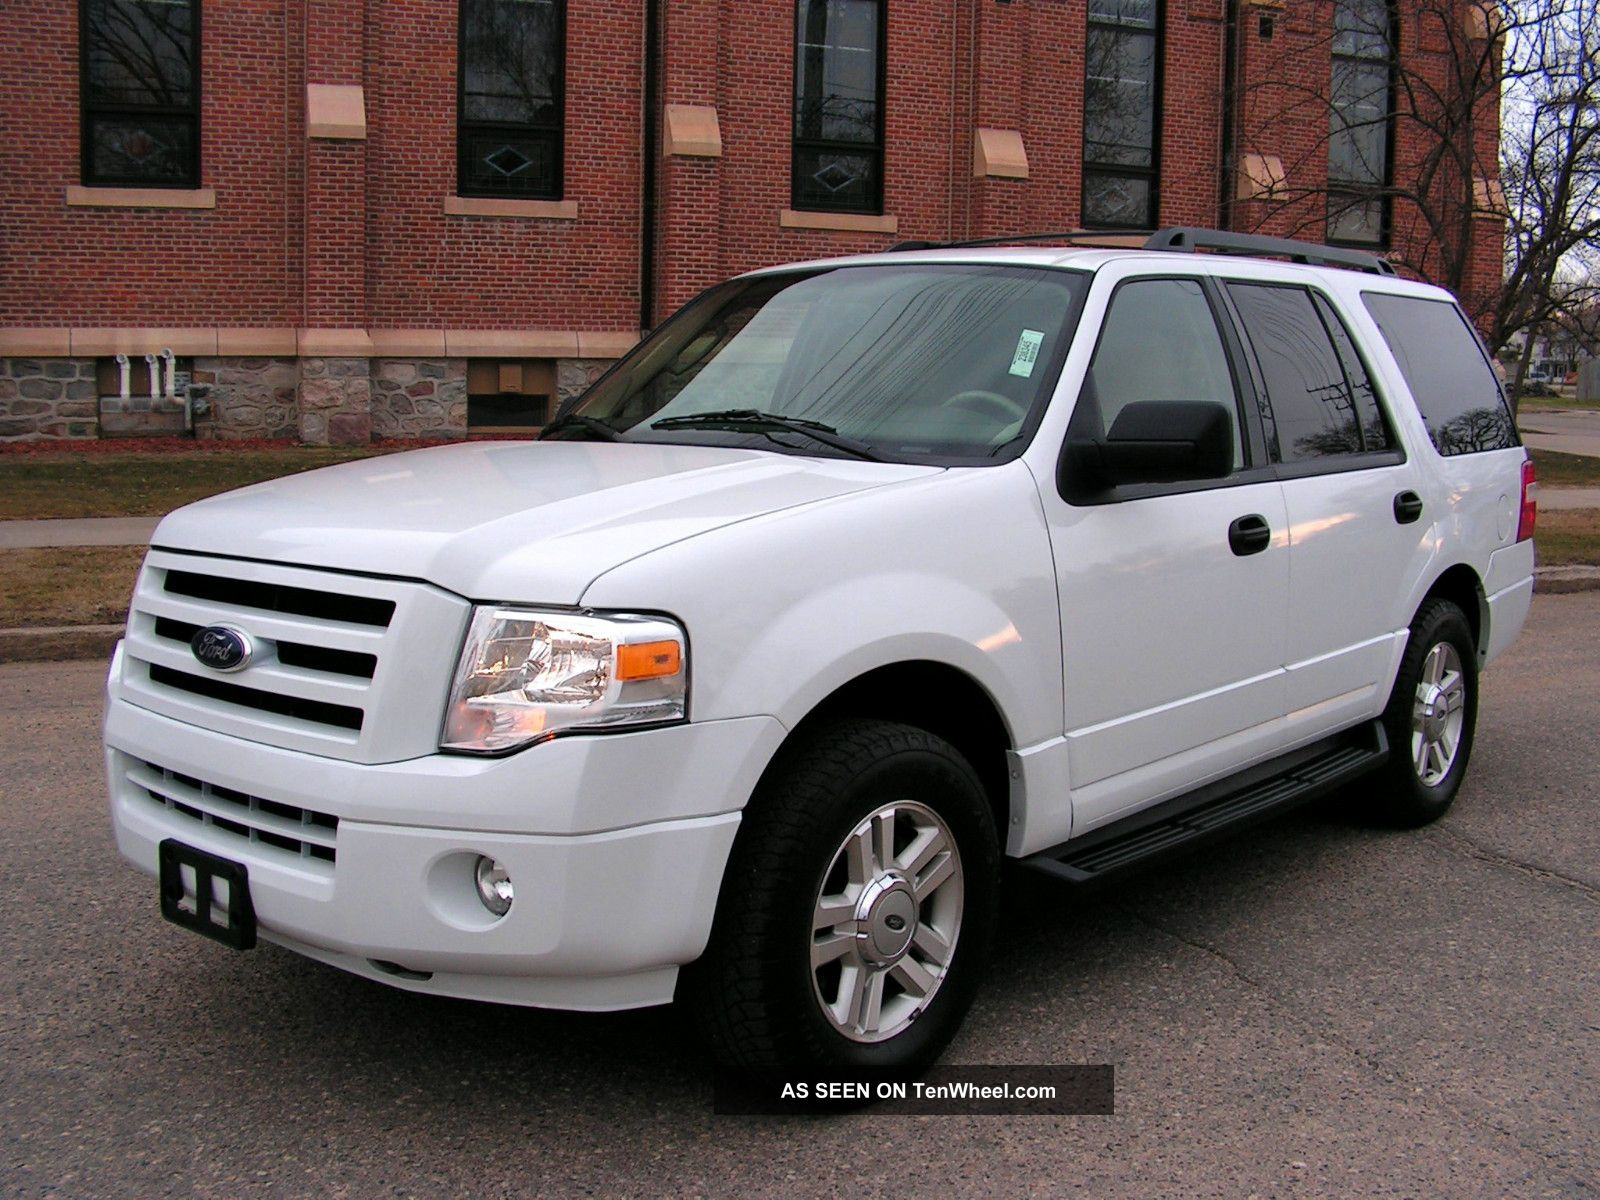 2010 ford expedition xlt white 4x4 flex fuel only 17 500 midwest located. Black Bedroom Furniture Sets. Home Design Ideas